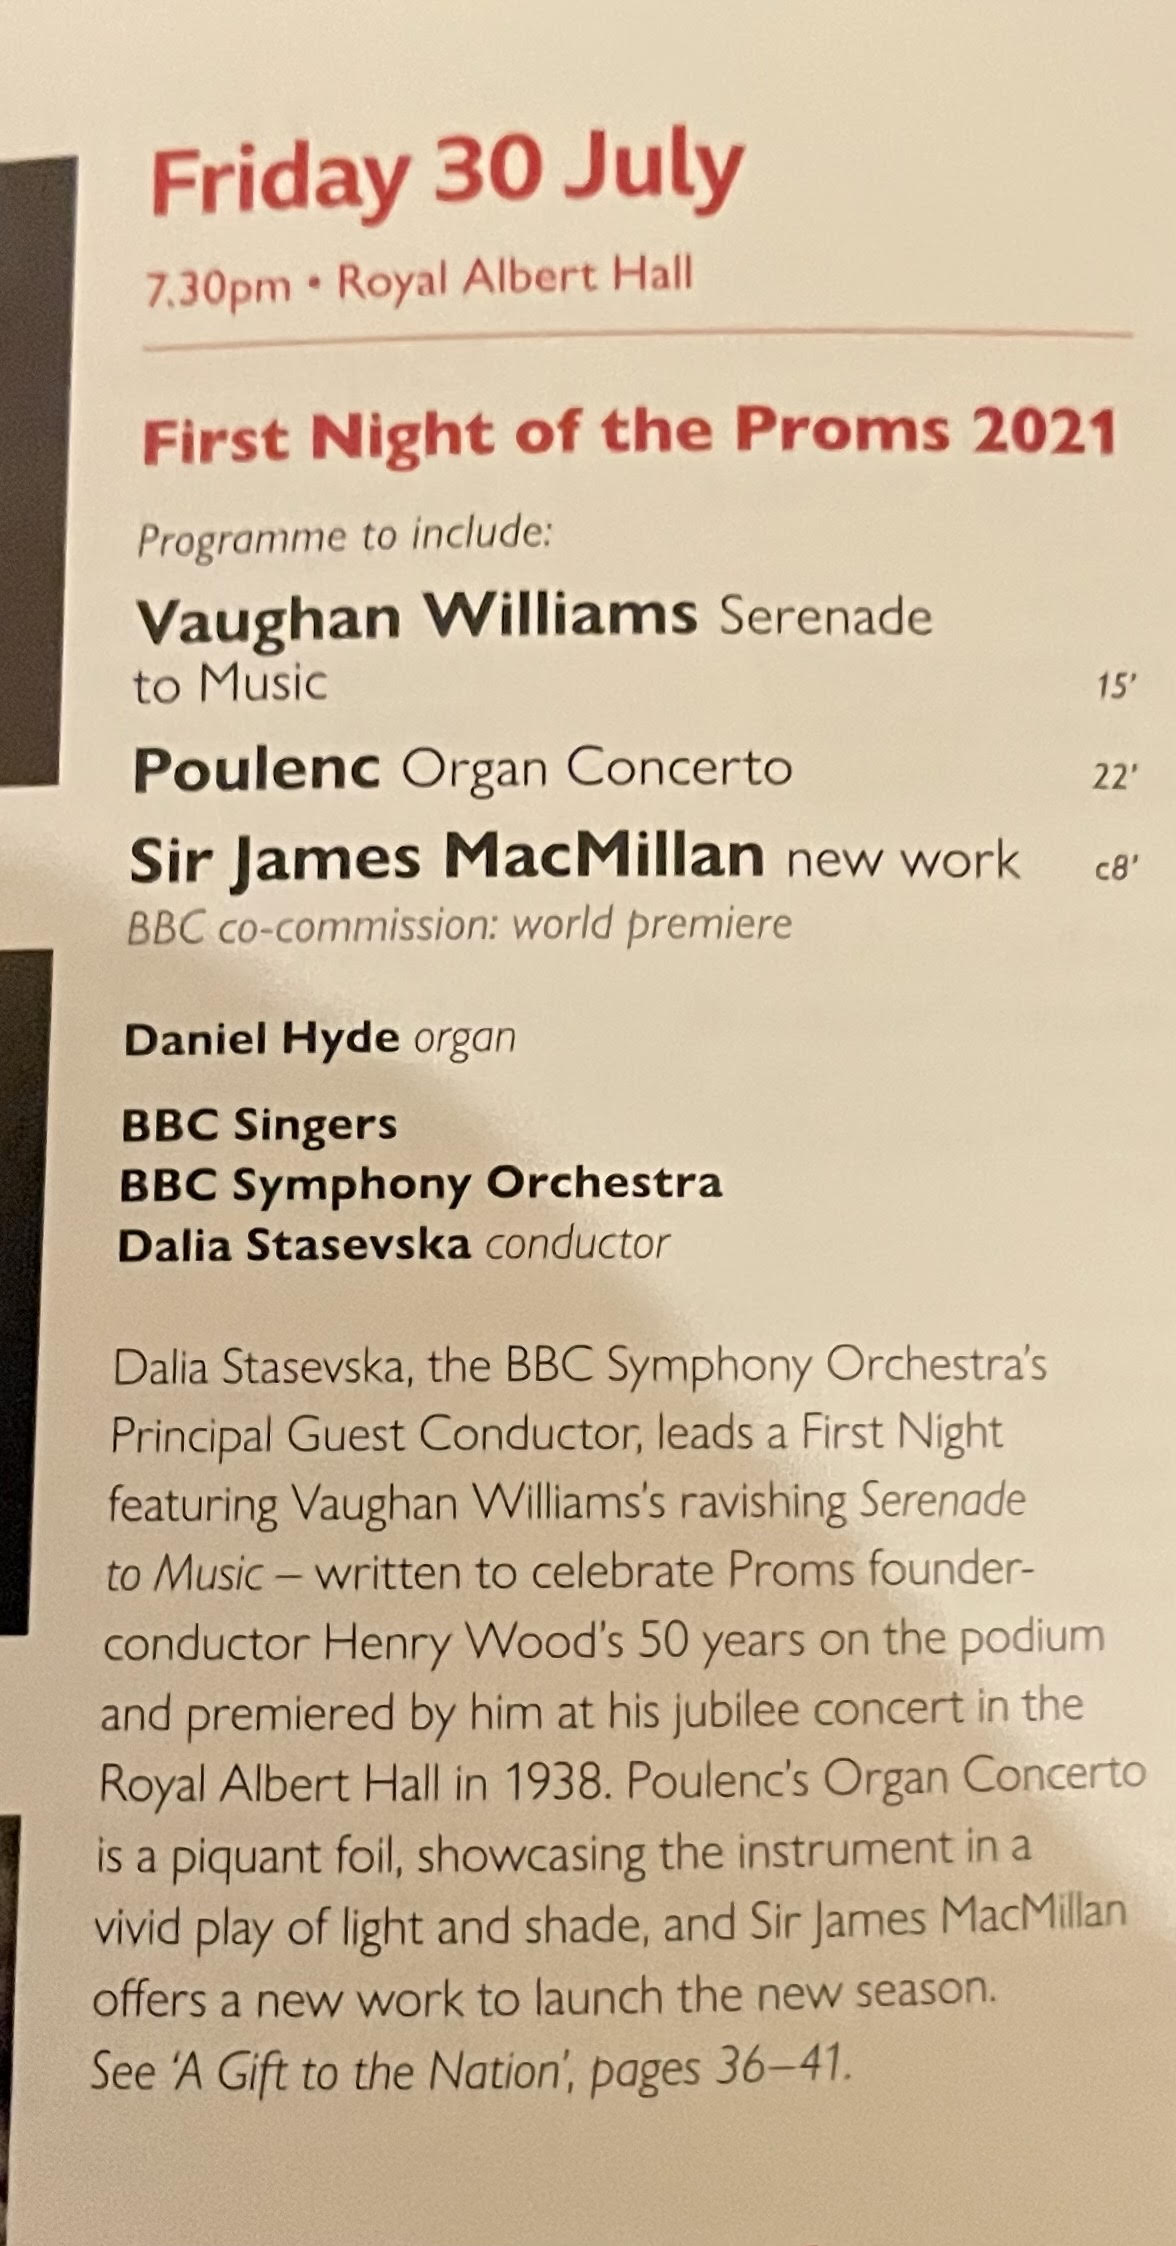 BBC omits soloists from Proms 1st night programme